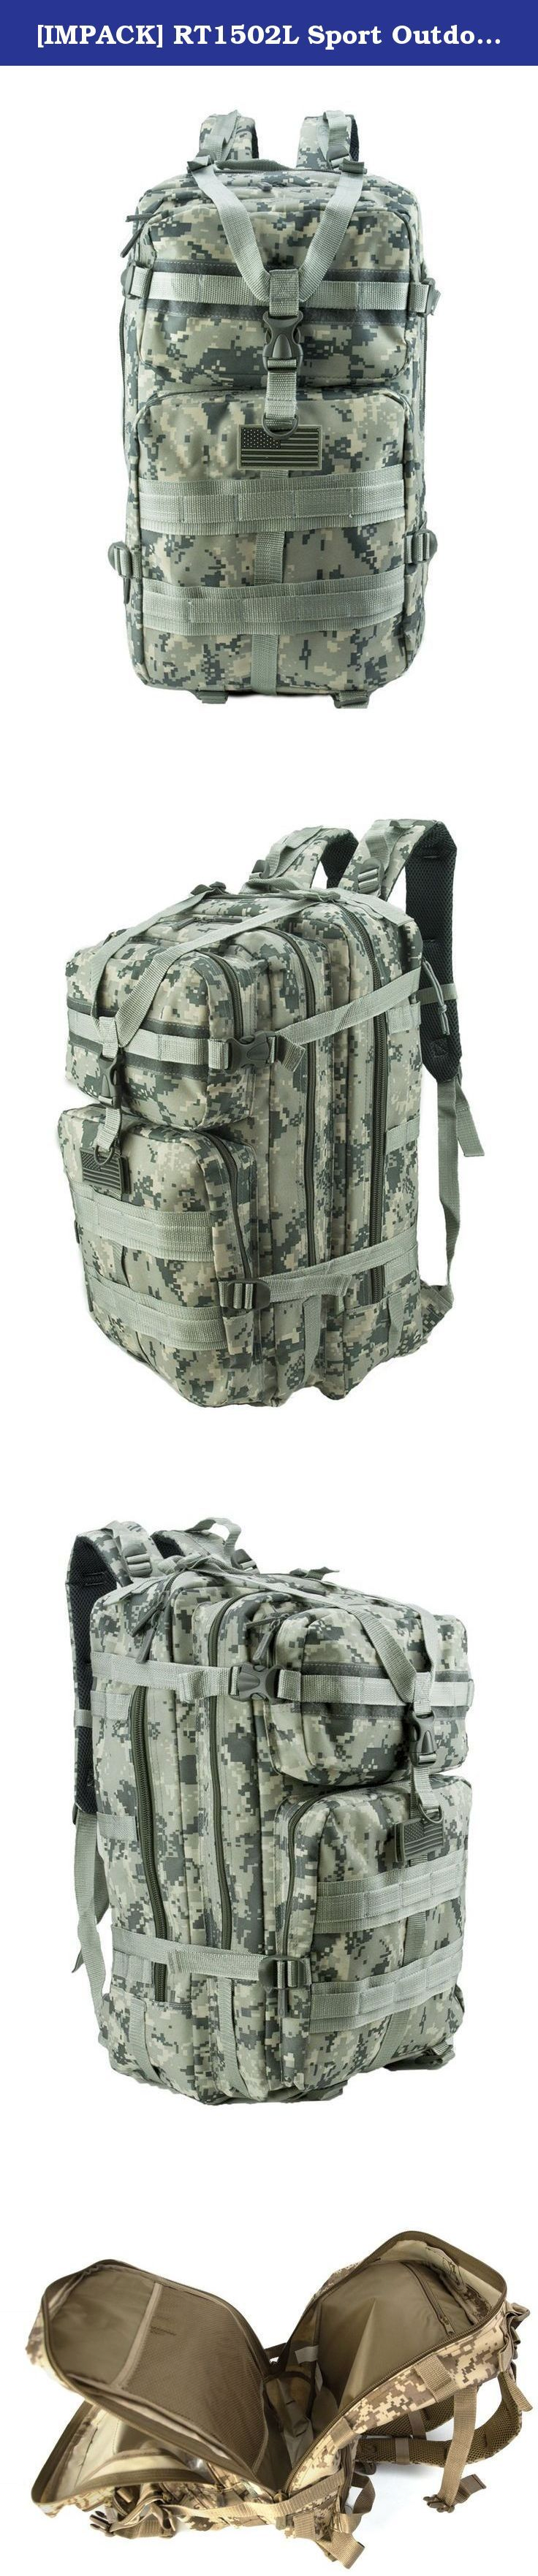 "[IMPACK] RT1502L Sport Outdoor 20"" Military Tactical Molle Backpack Camping Hiking Trekking Big Backpack (ACU). Dimension : 20"" x 11"" x 11""."